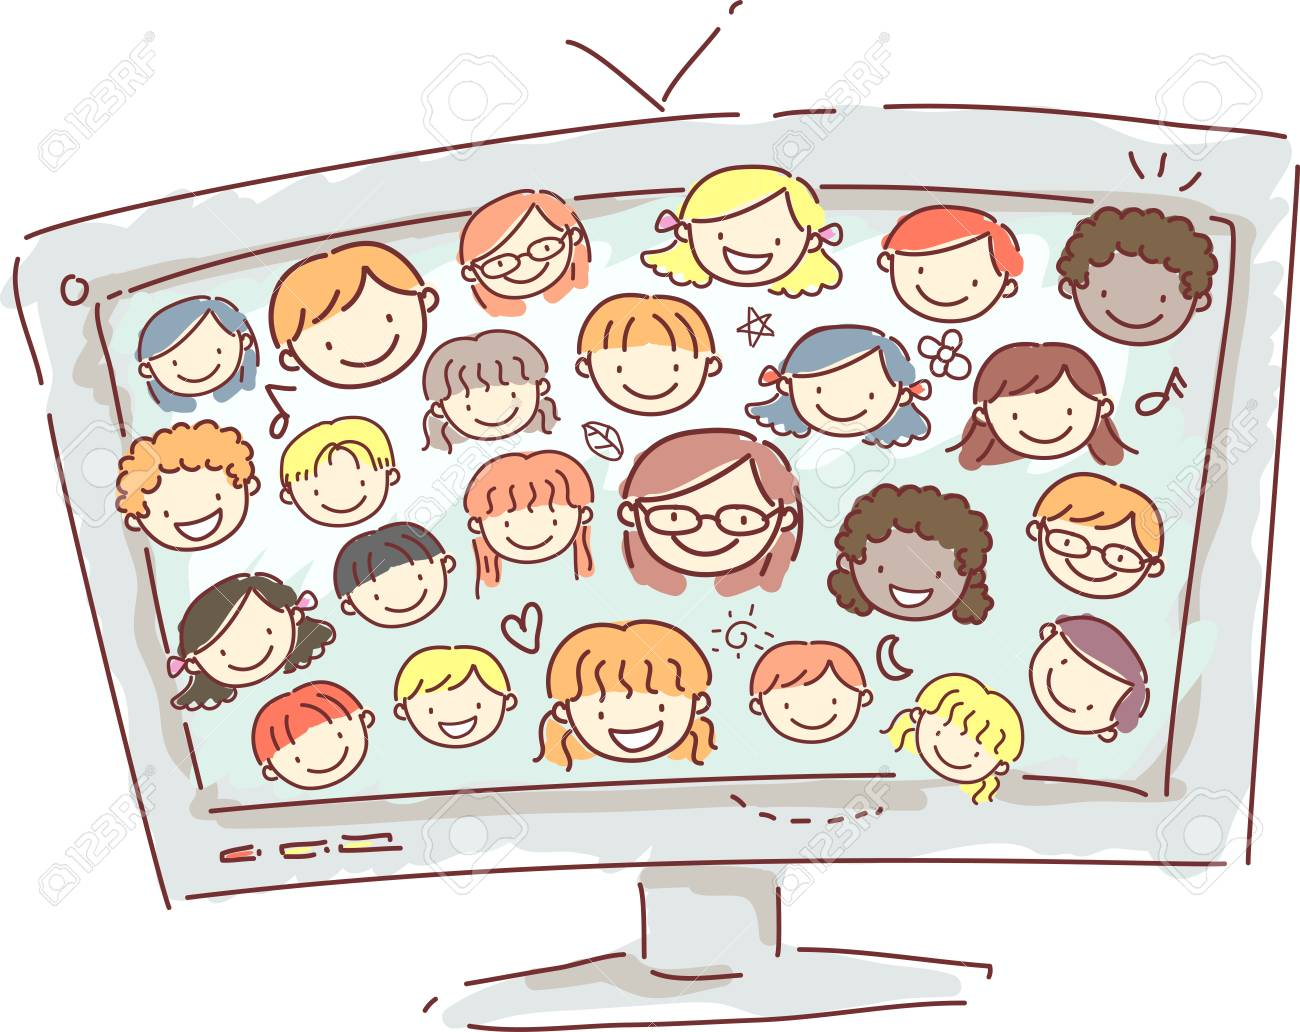 Doodle Illustration of a Computer Monitor Displaying the Faces of Little Kids - 43636424